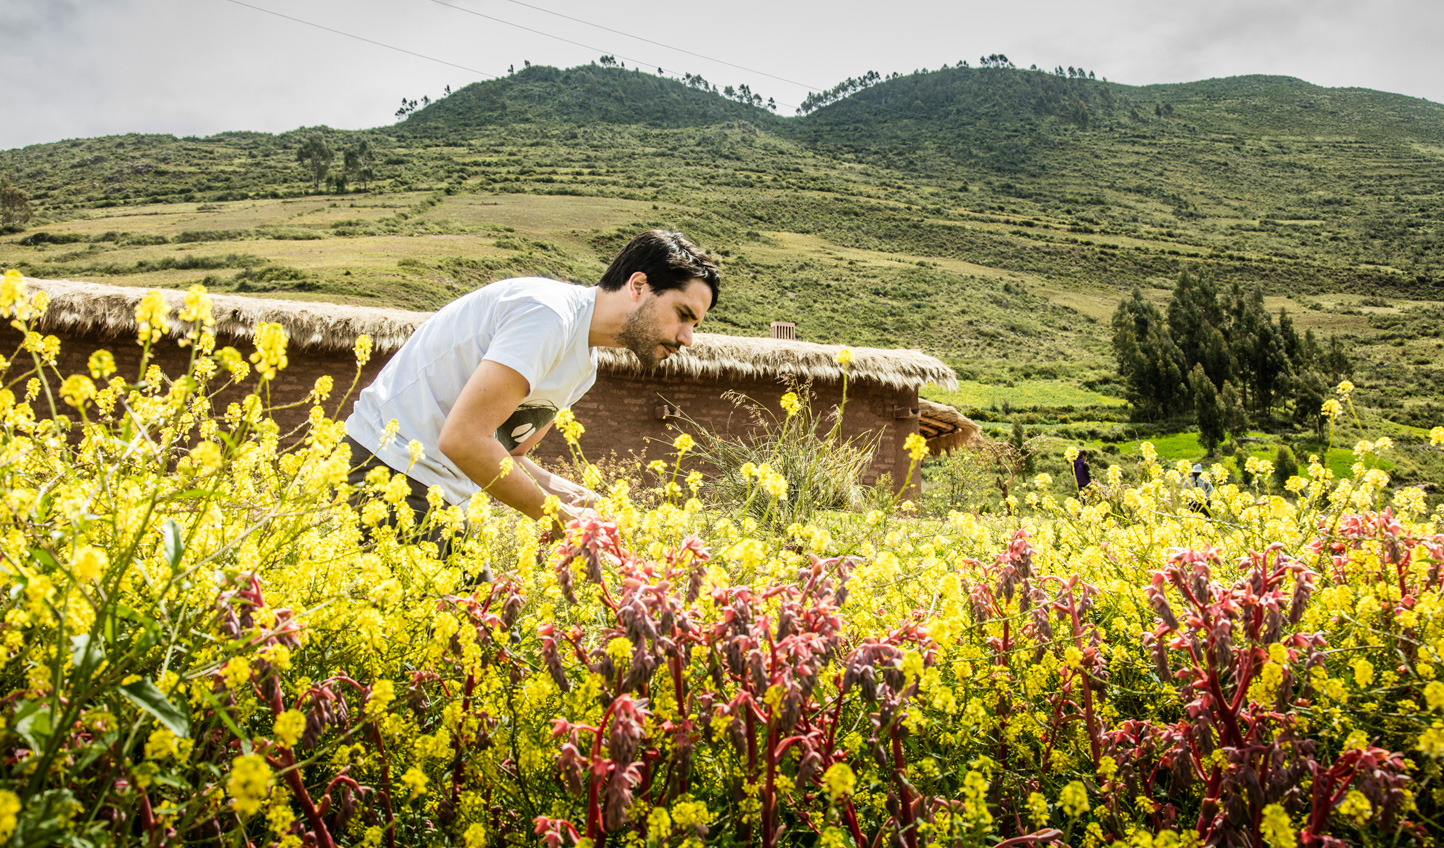 Join Virgilio and forage for some of the country's most unique ingredients